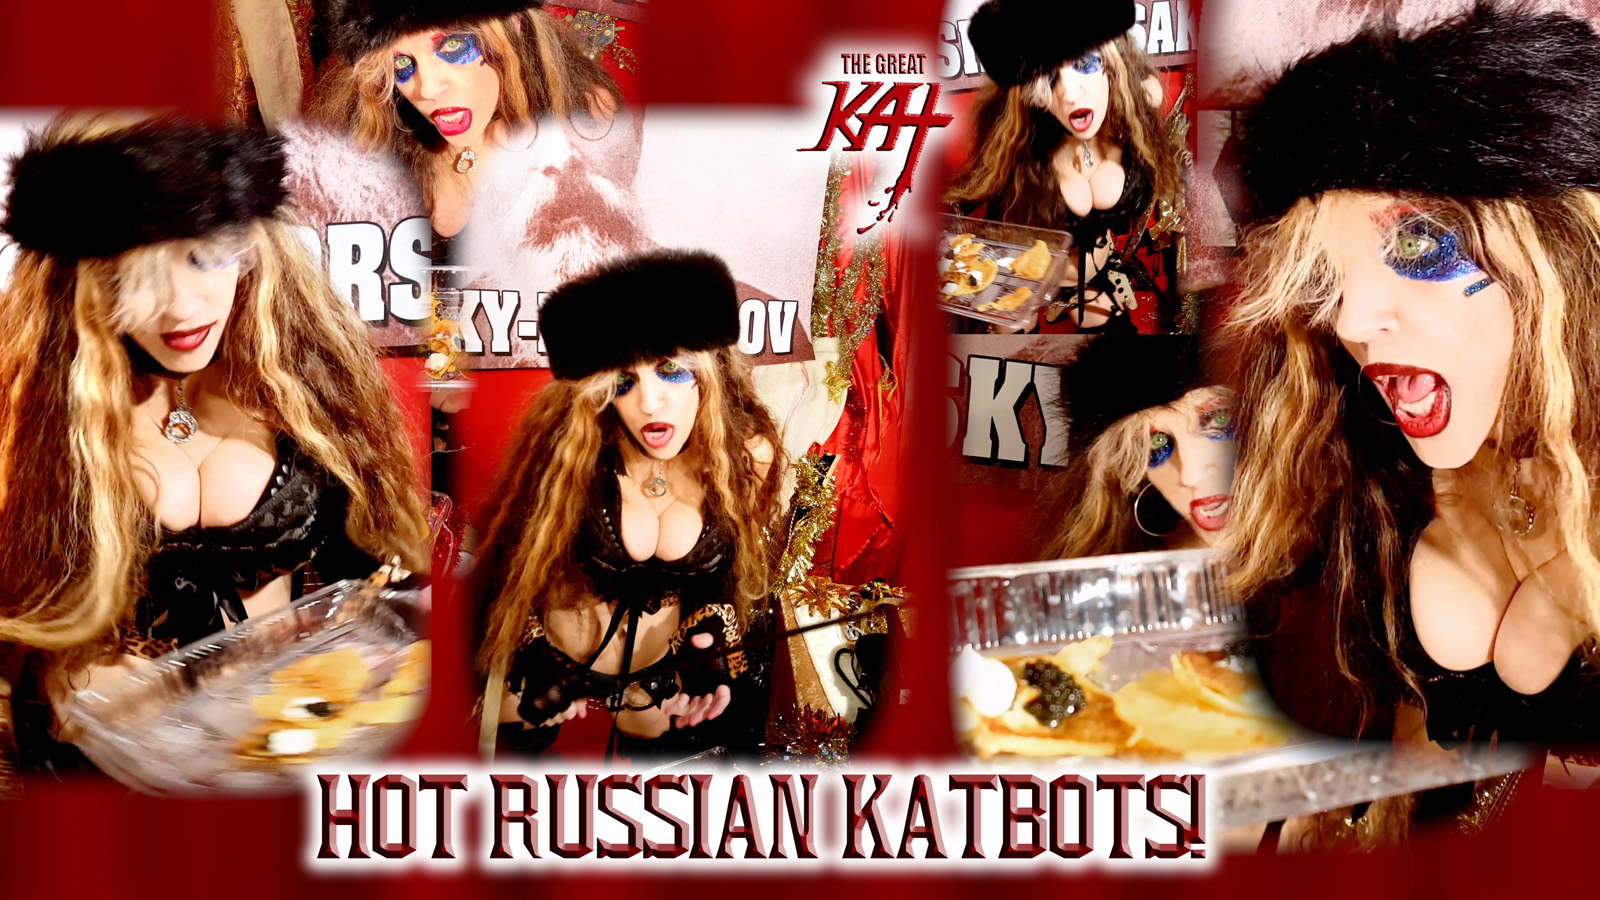 """HOT RUSSIAN KATBOTS! From """"CHEF GREAT KAT COOKS RUSSIAN CAVIAR AND BLINI WITH RIMSKY-KORSAKOV"""" VIDEO!!"""